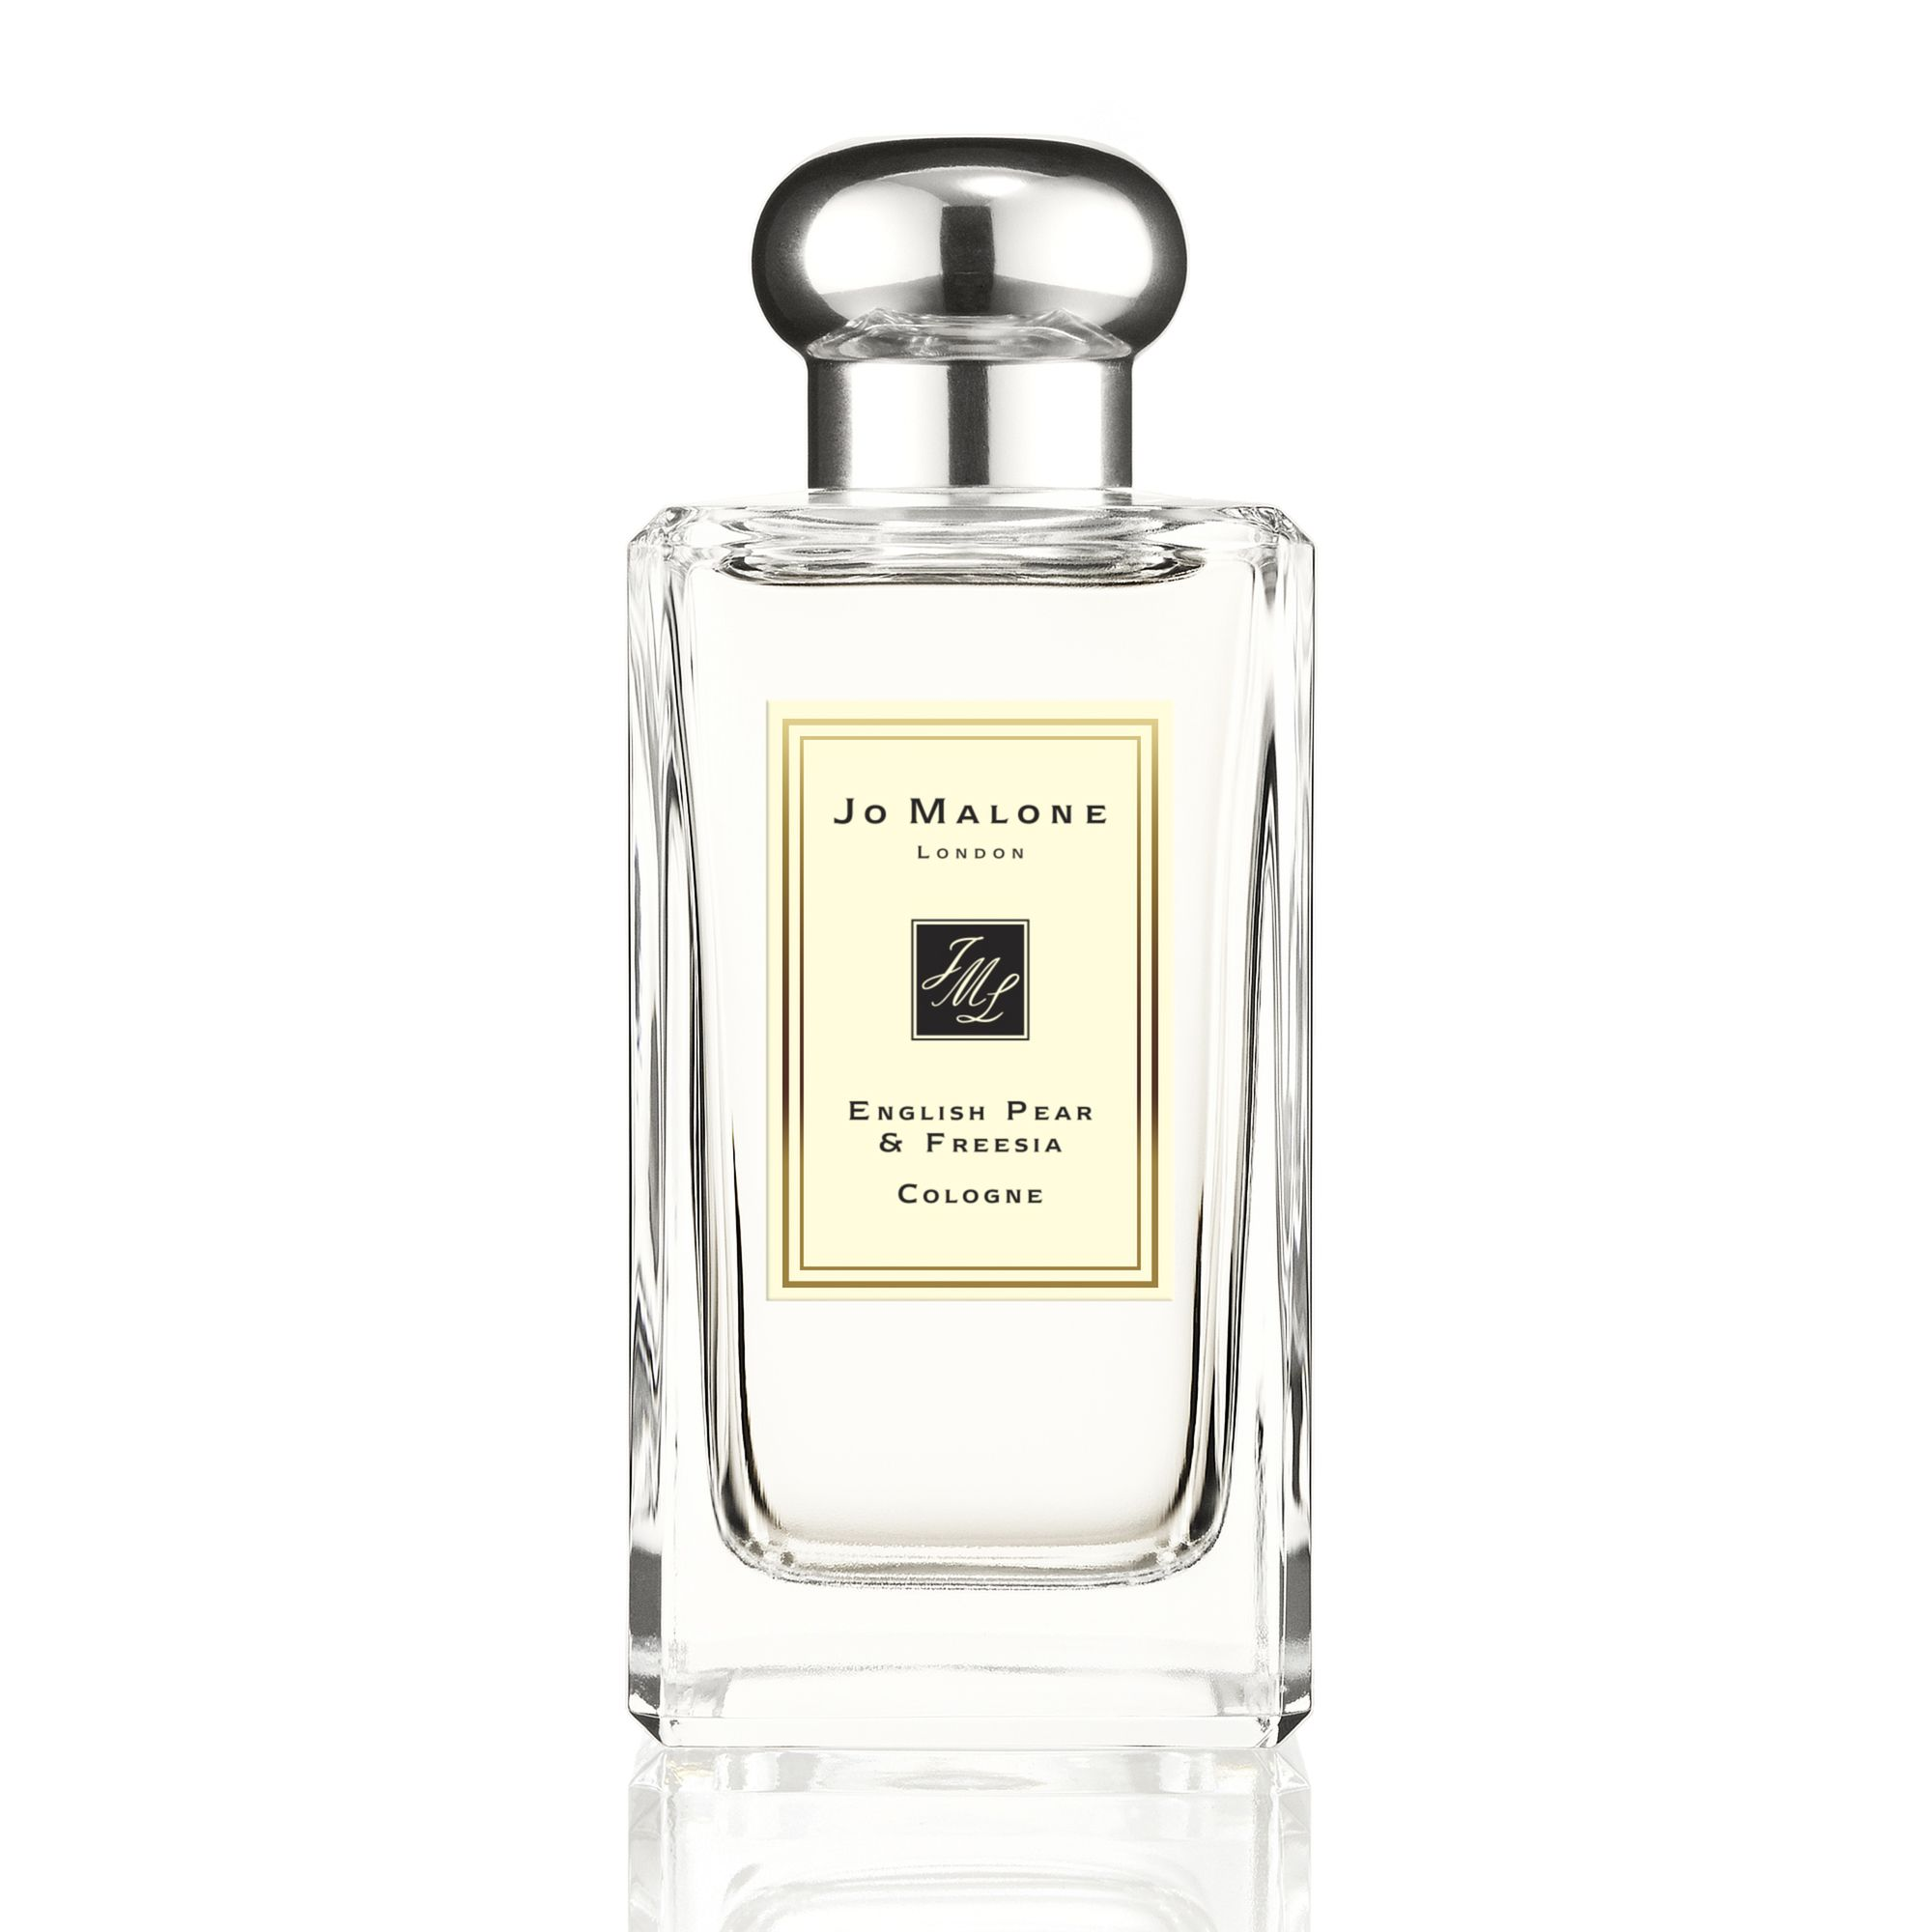 Jo Malone London English Pear & Freesia. A beautiful scent we adore. However, Jo Malone's range of perfumes will leave you wanting more, a desire that will never fade.